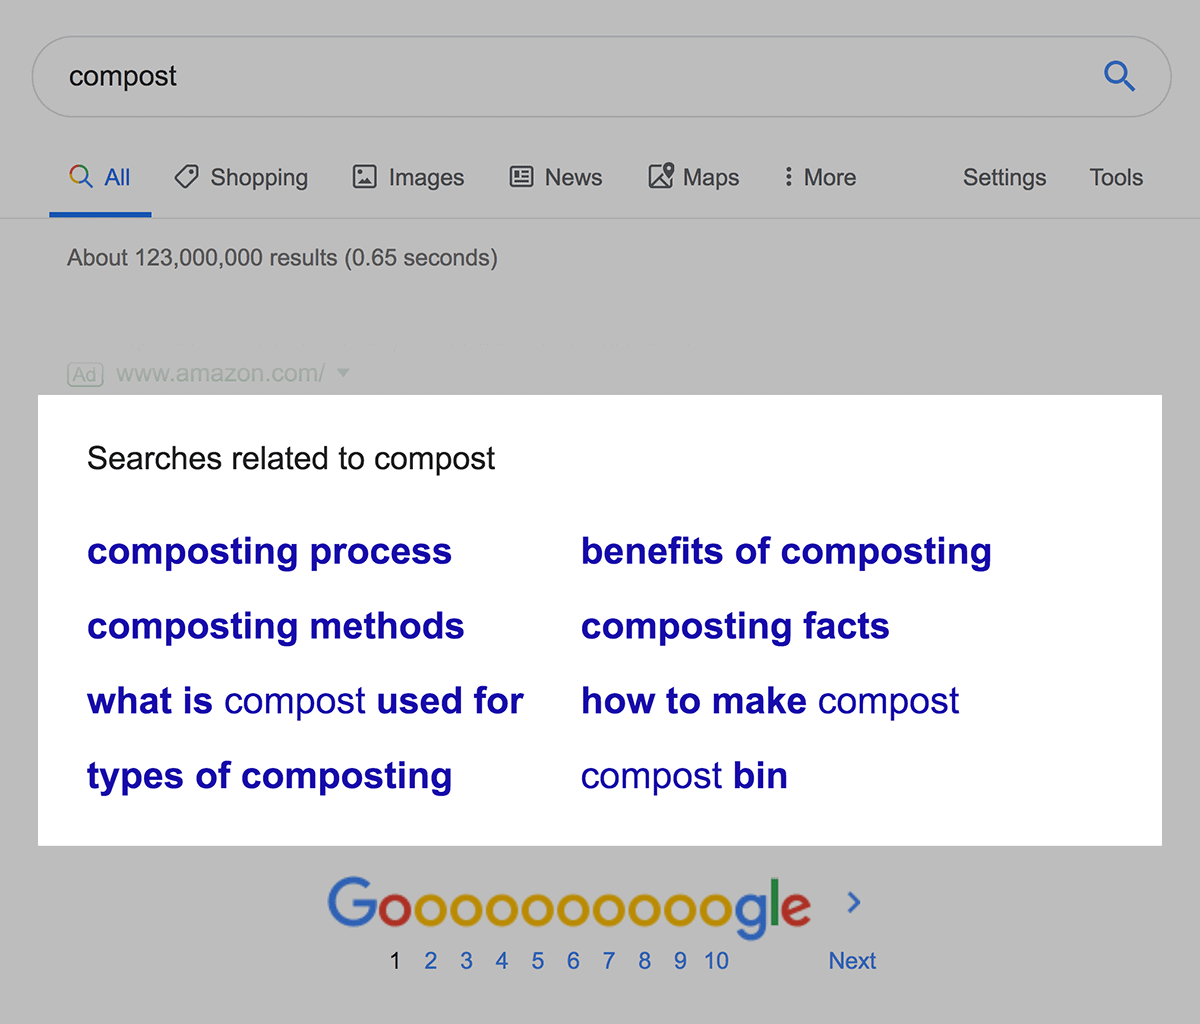 Searches related to 'compost'